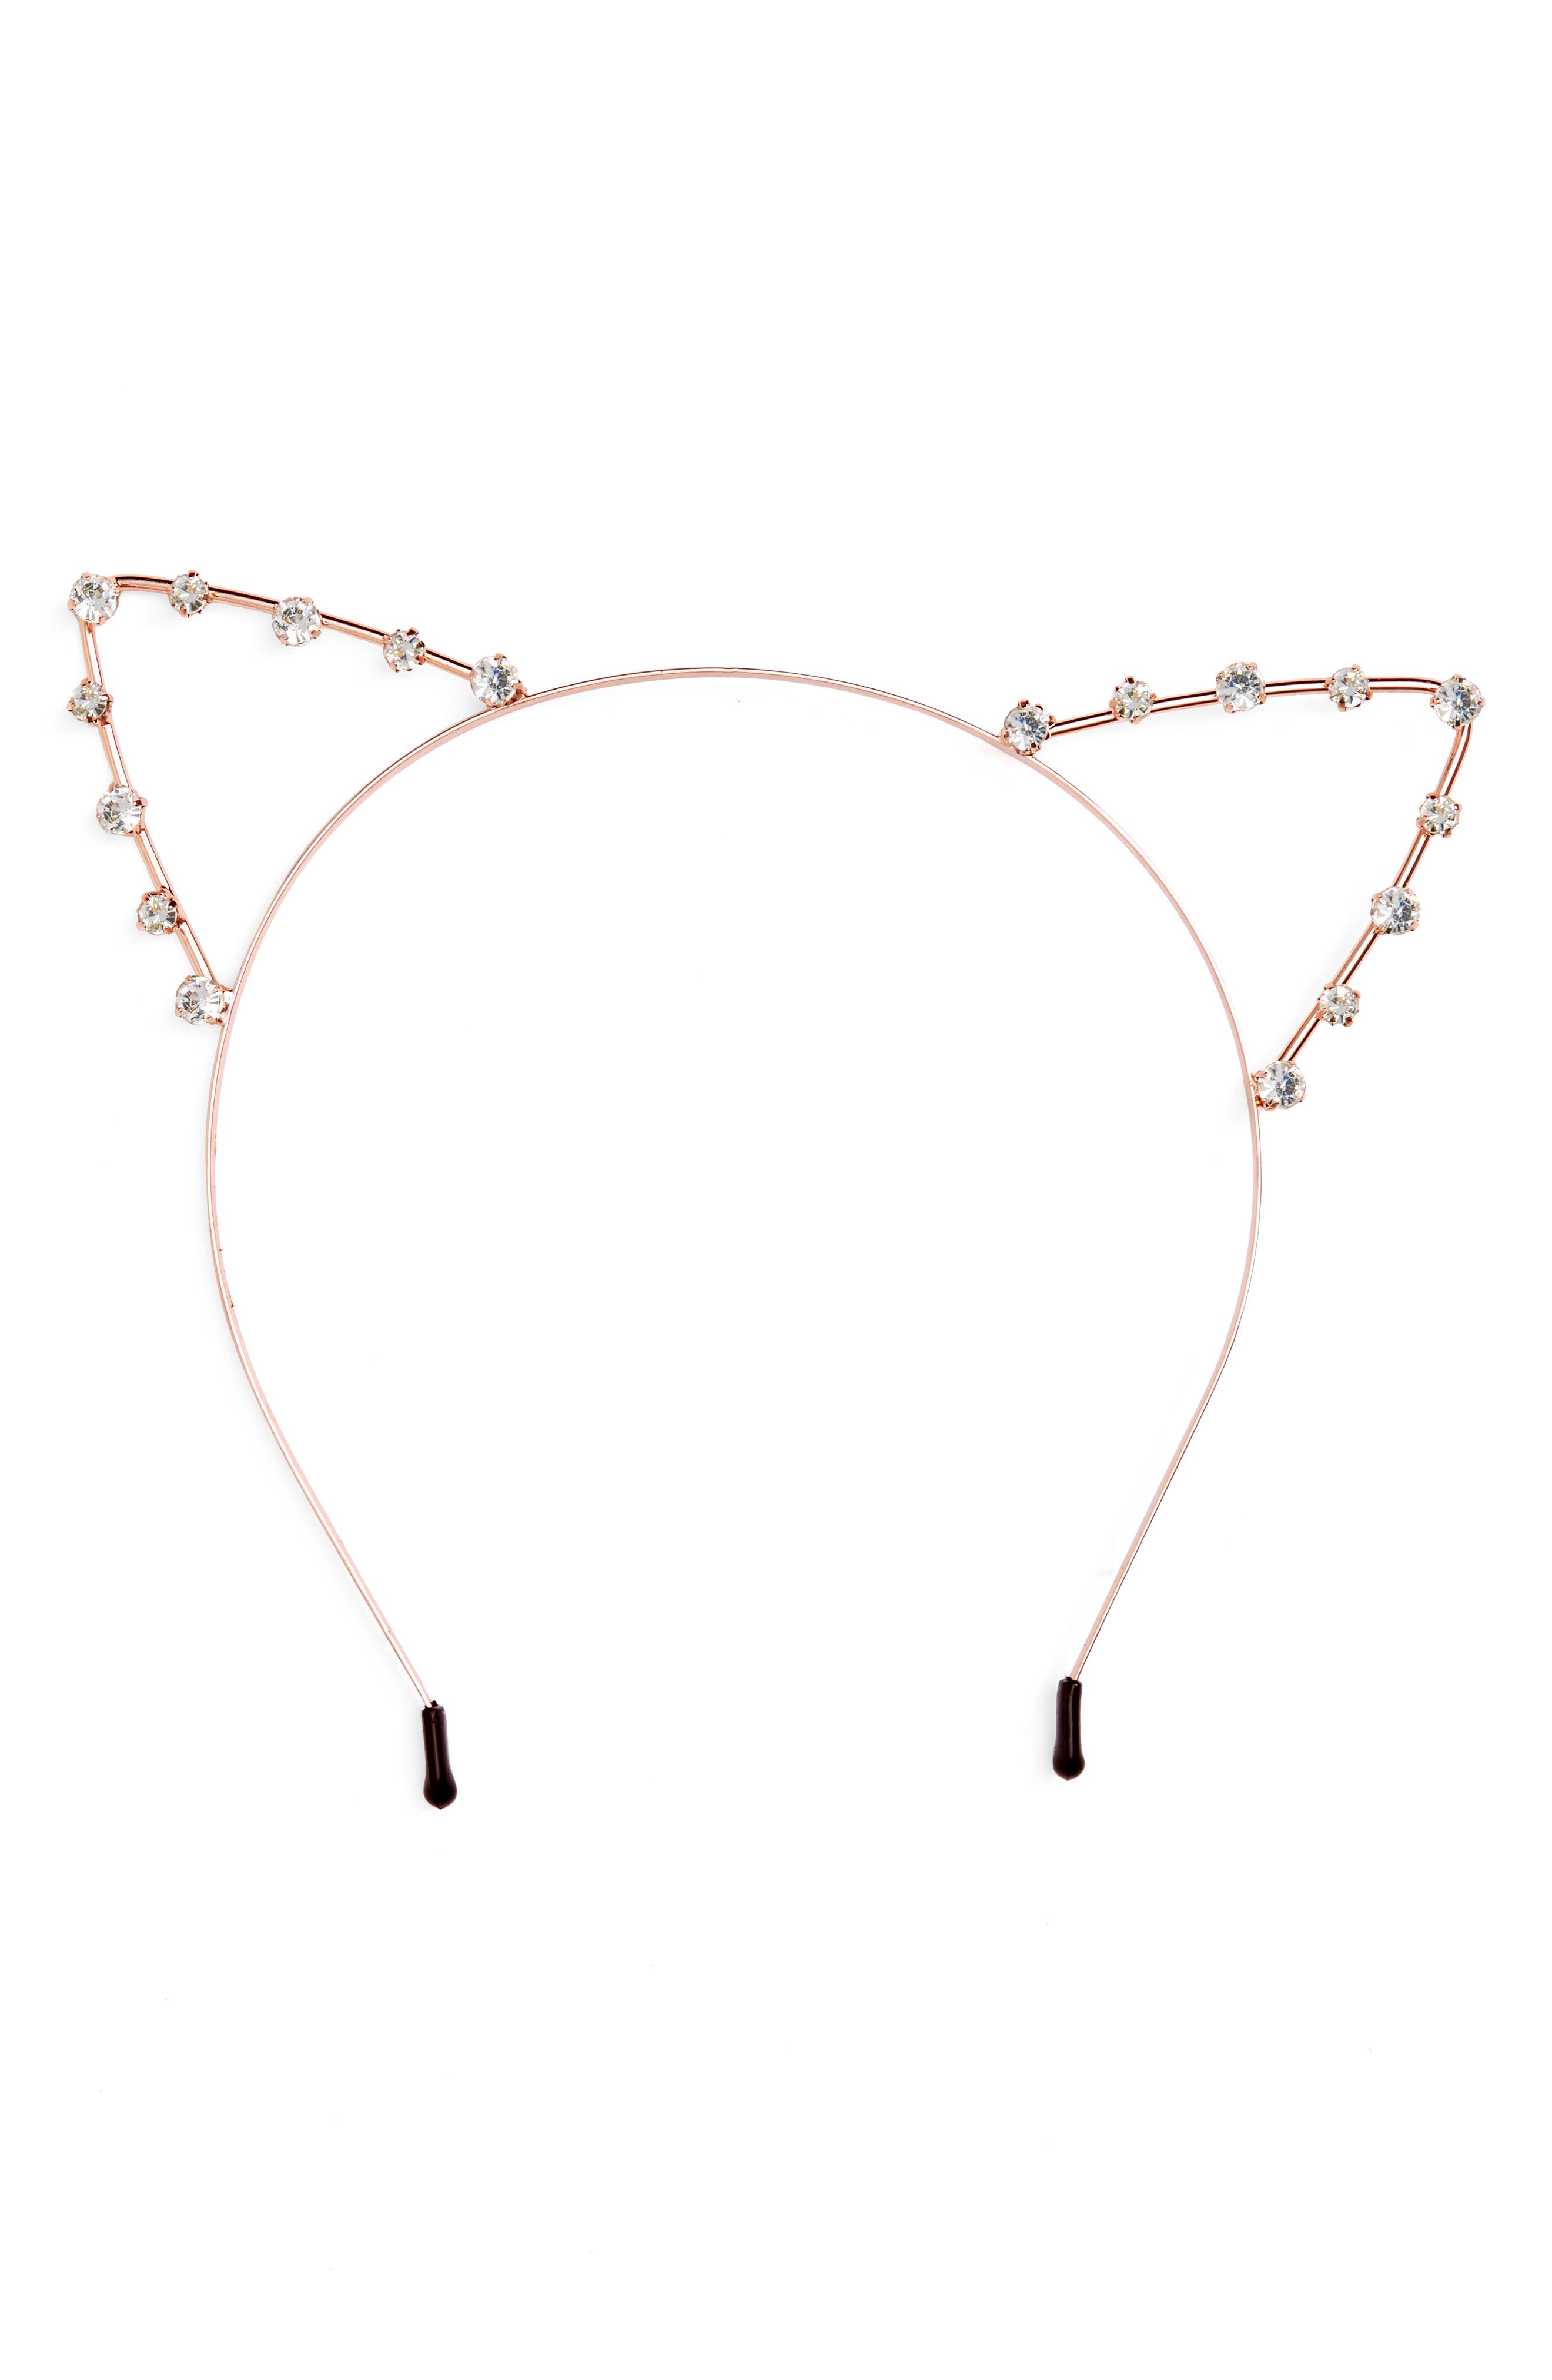 Crystal Cat Ears Headband,                         Main,                         color, Rose Gold